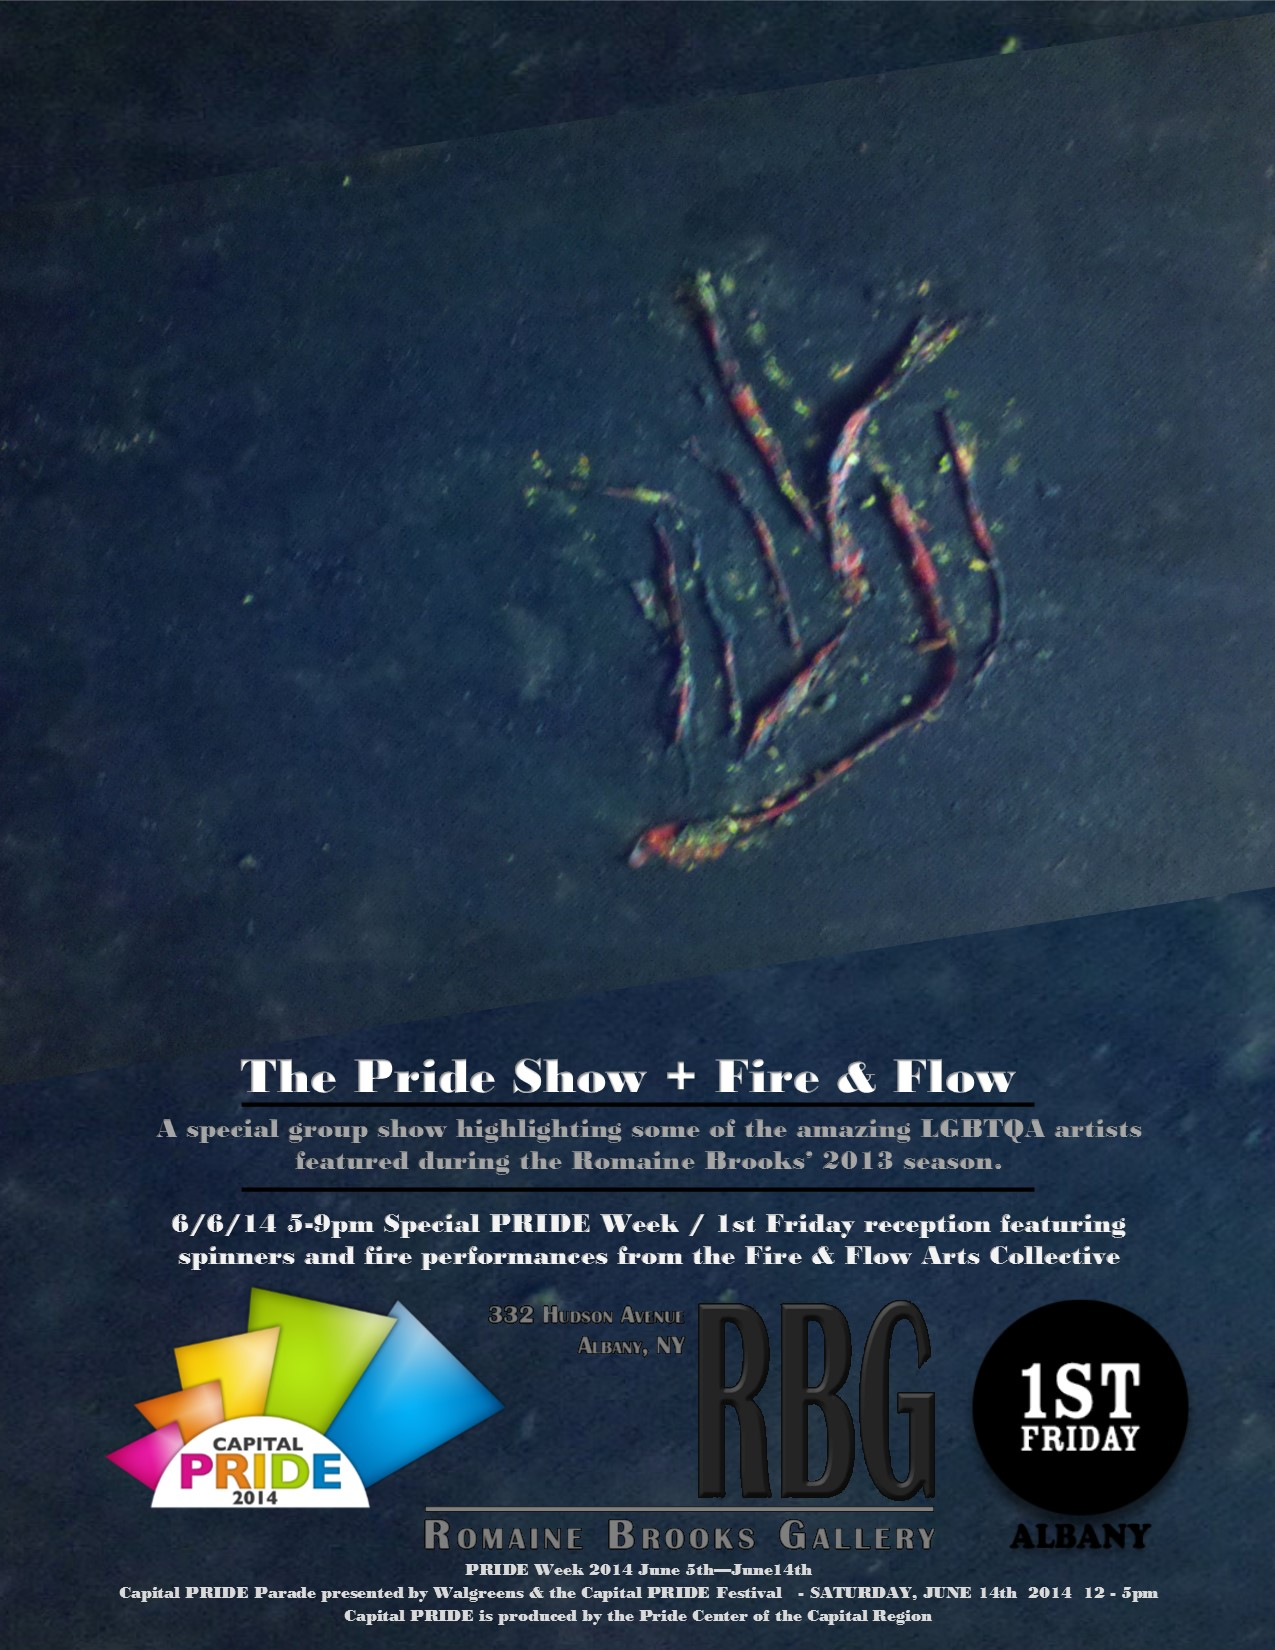 PRIDE Show + Fire & Flow poster